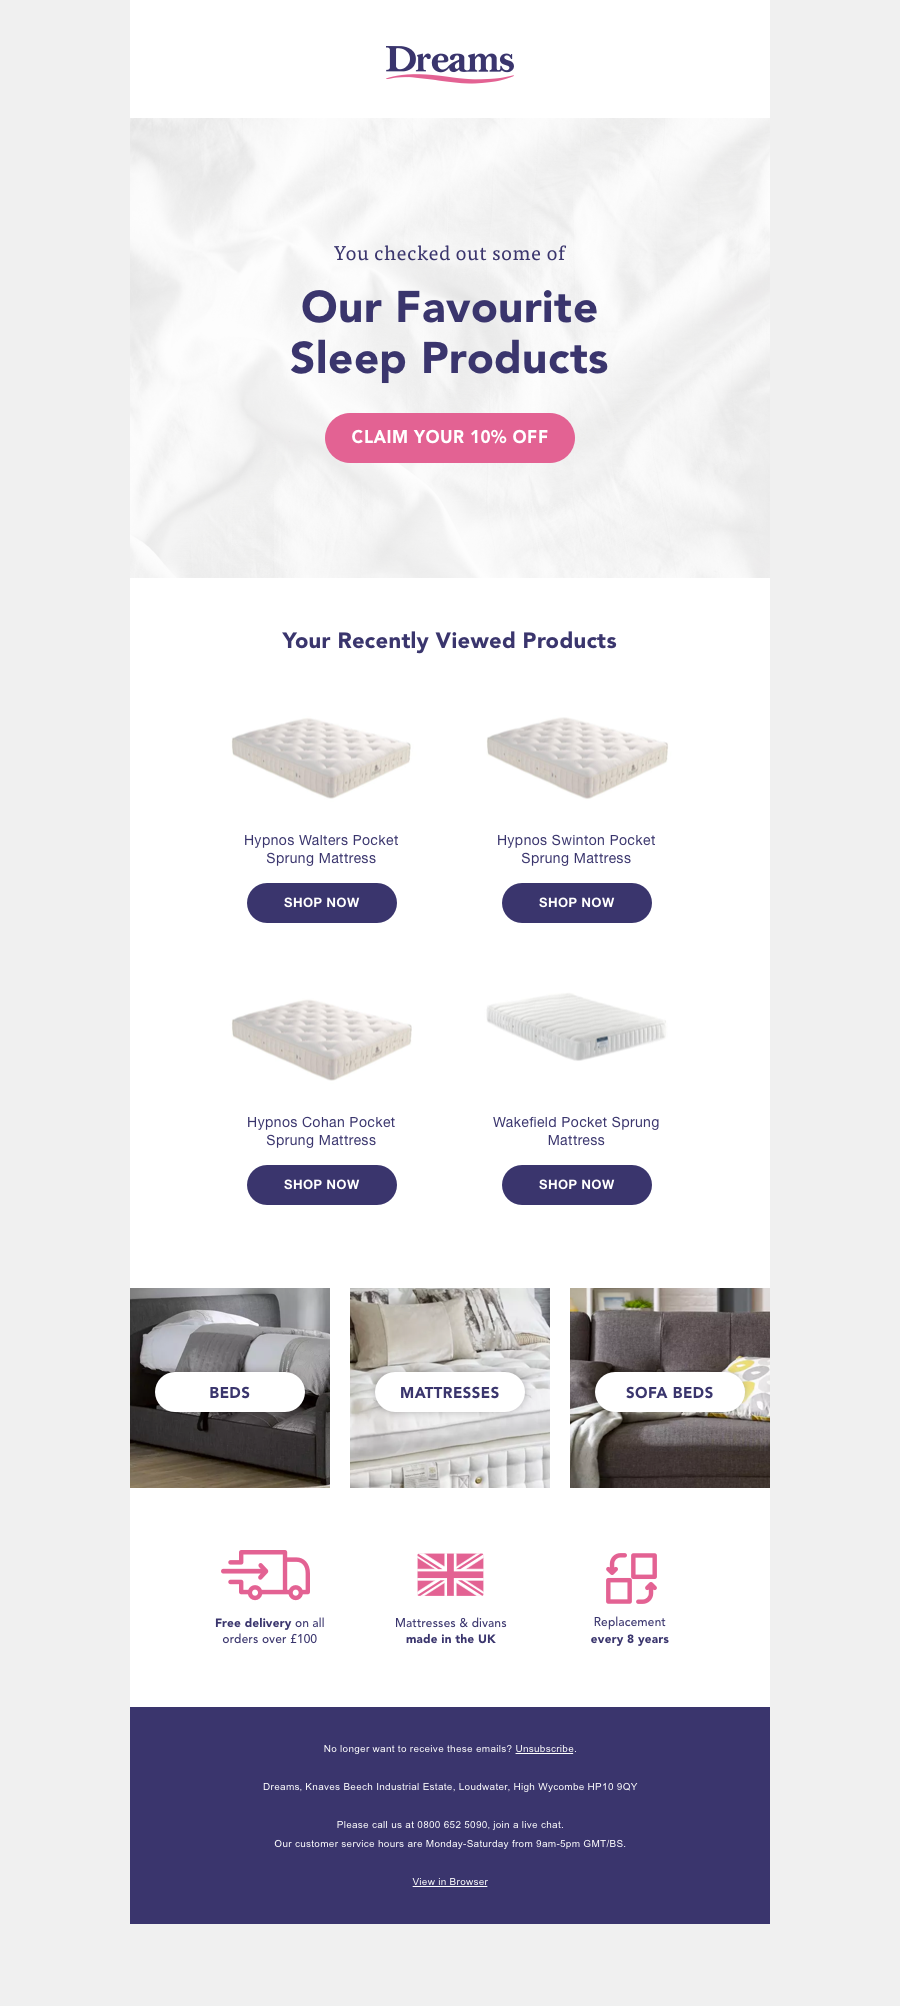 Dreams - product abandonment email for sales demo